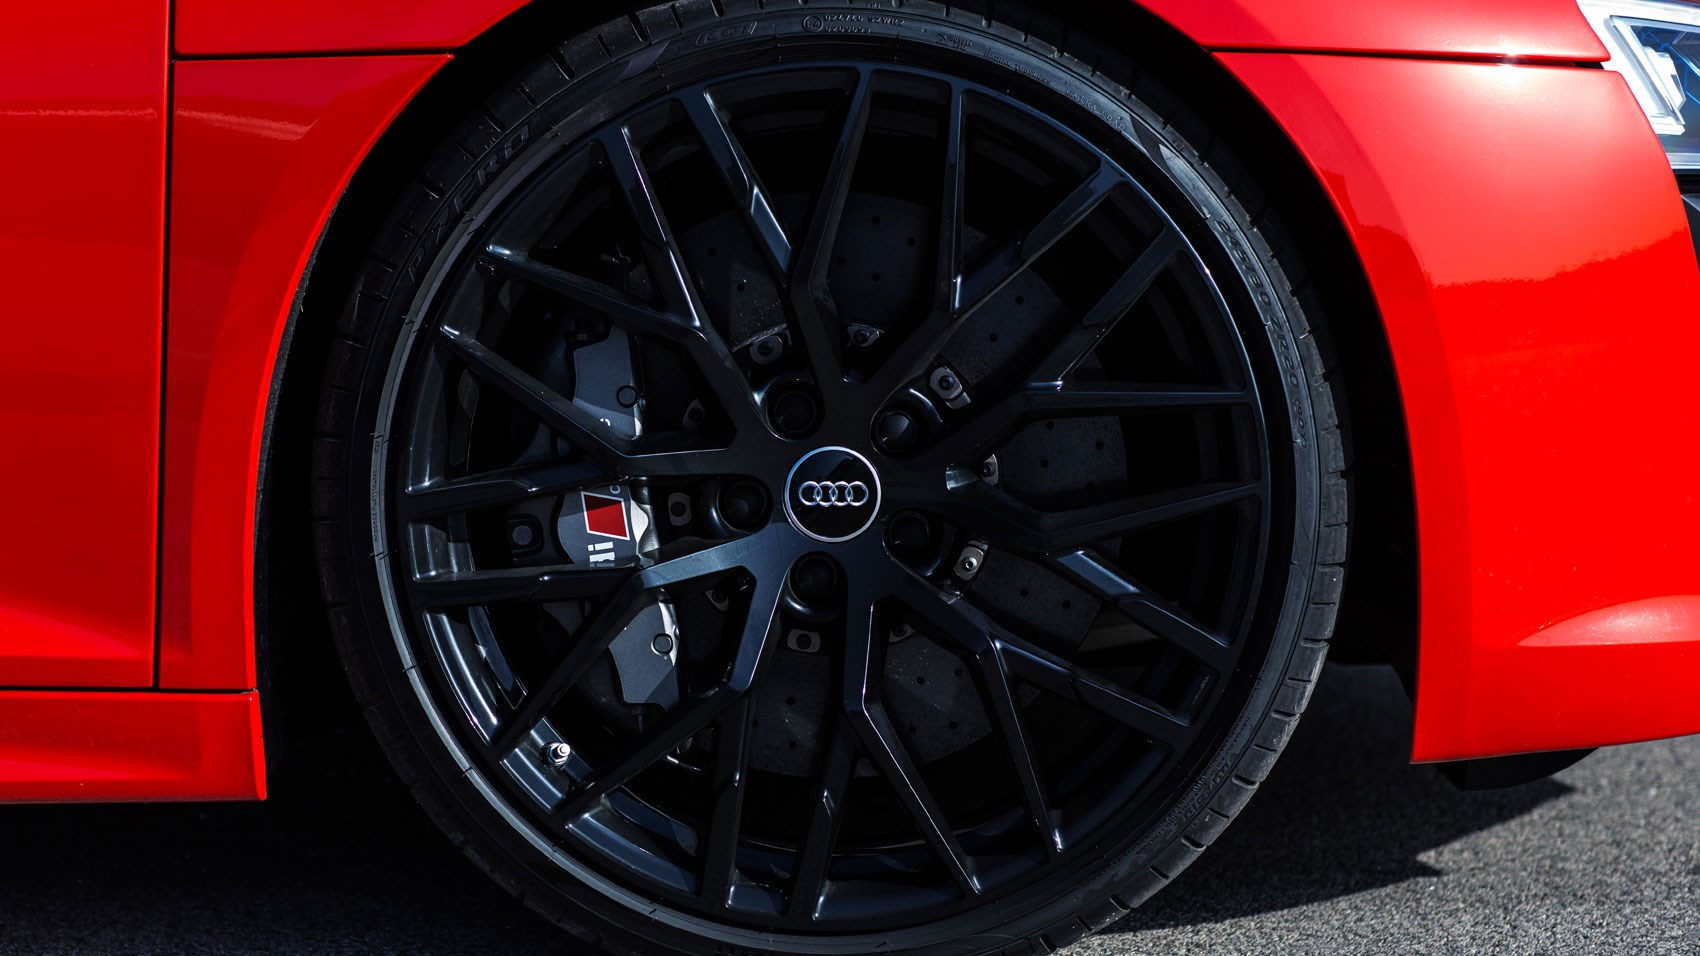 audi r8 v10 plus (2015) review car magazineGolf 4 With R8 Audi Rims #12